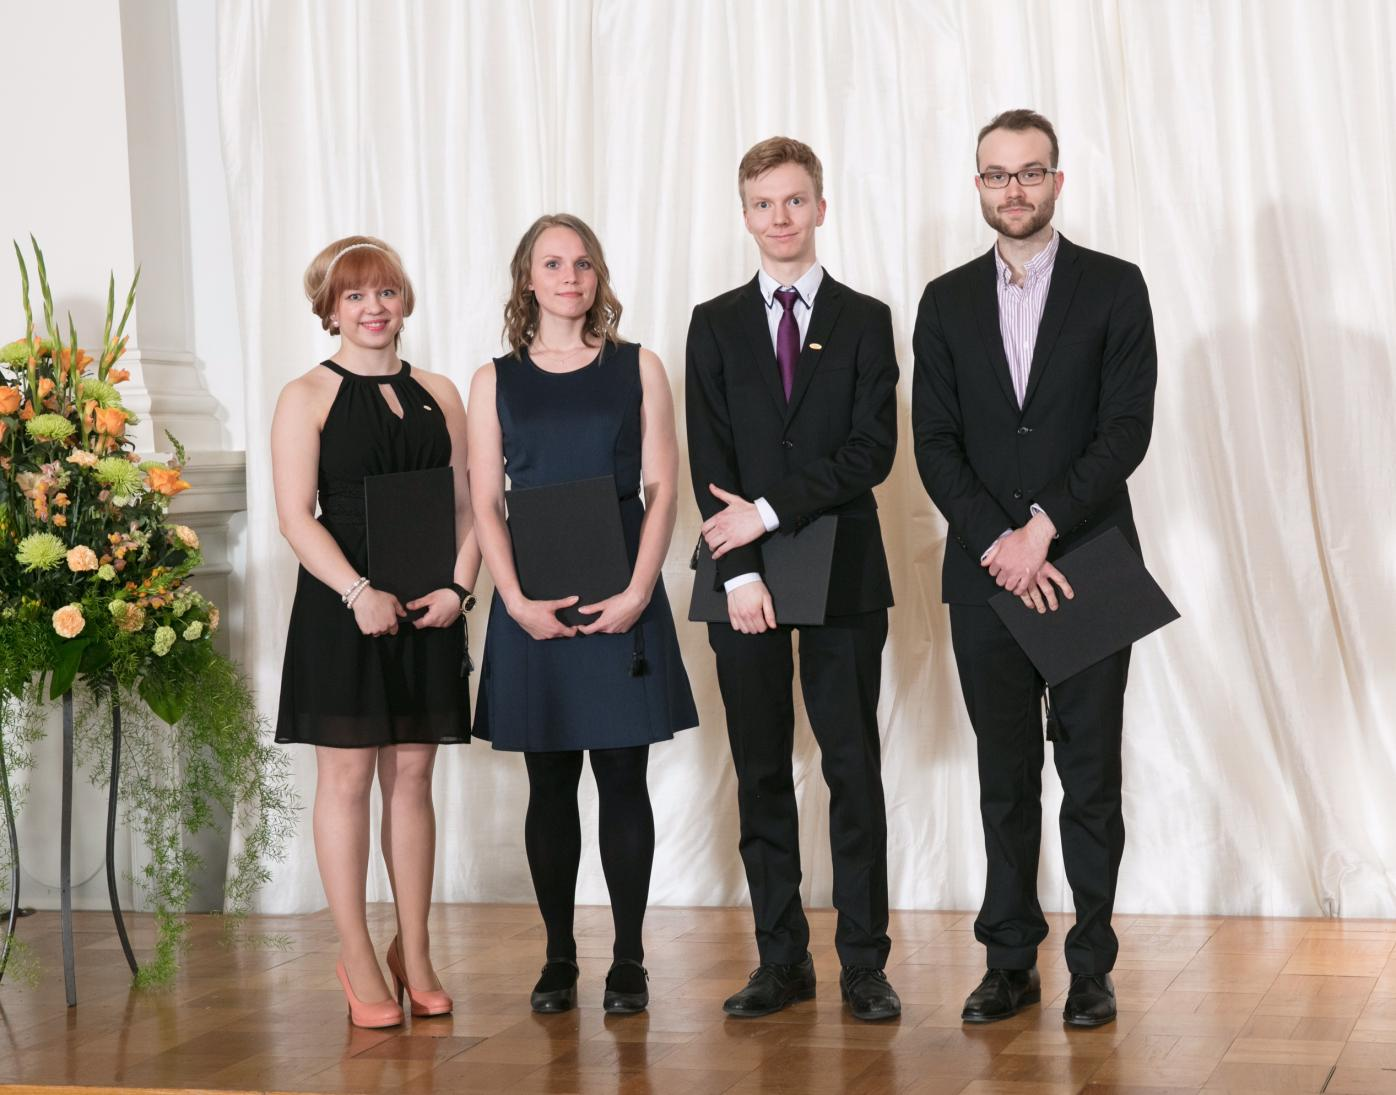 2017 Fulbright Finland Study of the U.S. Institutes for Student Leaders from Europe grantees with Fulbright Finland Underdraduate grantee at the Award Ceremony